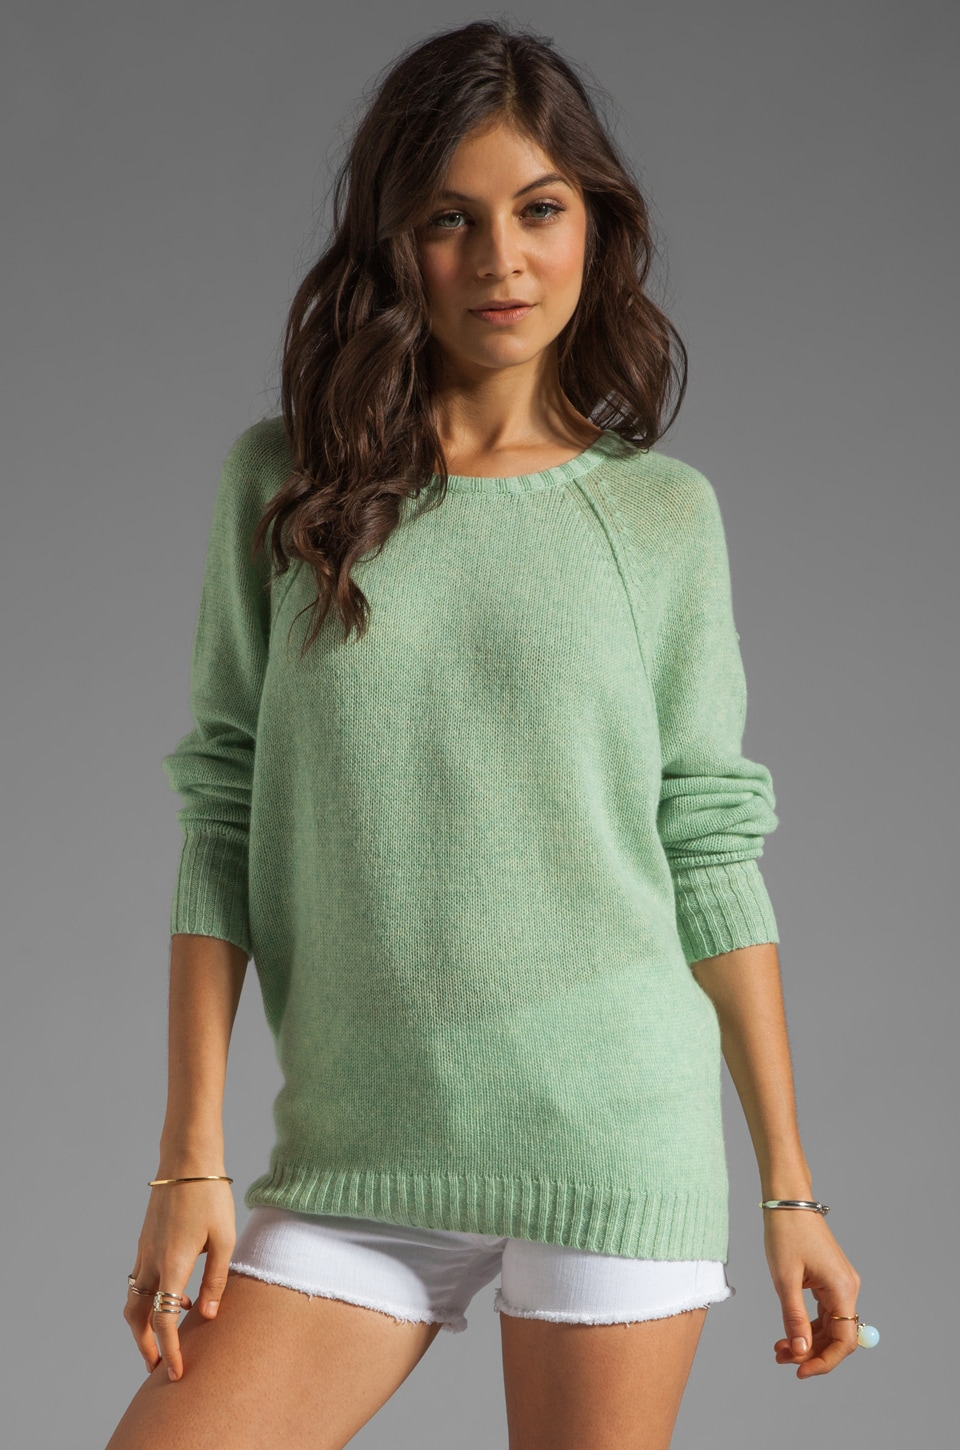 Autumn Cashmere Relaxed Fit Sweater in Aloe